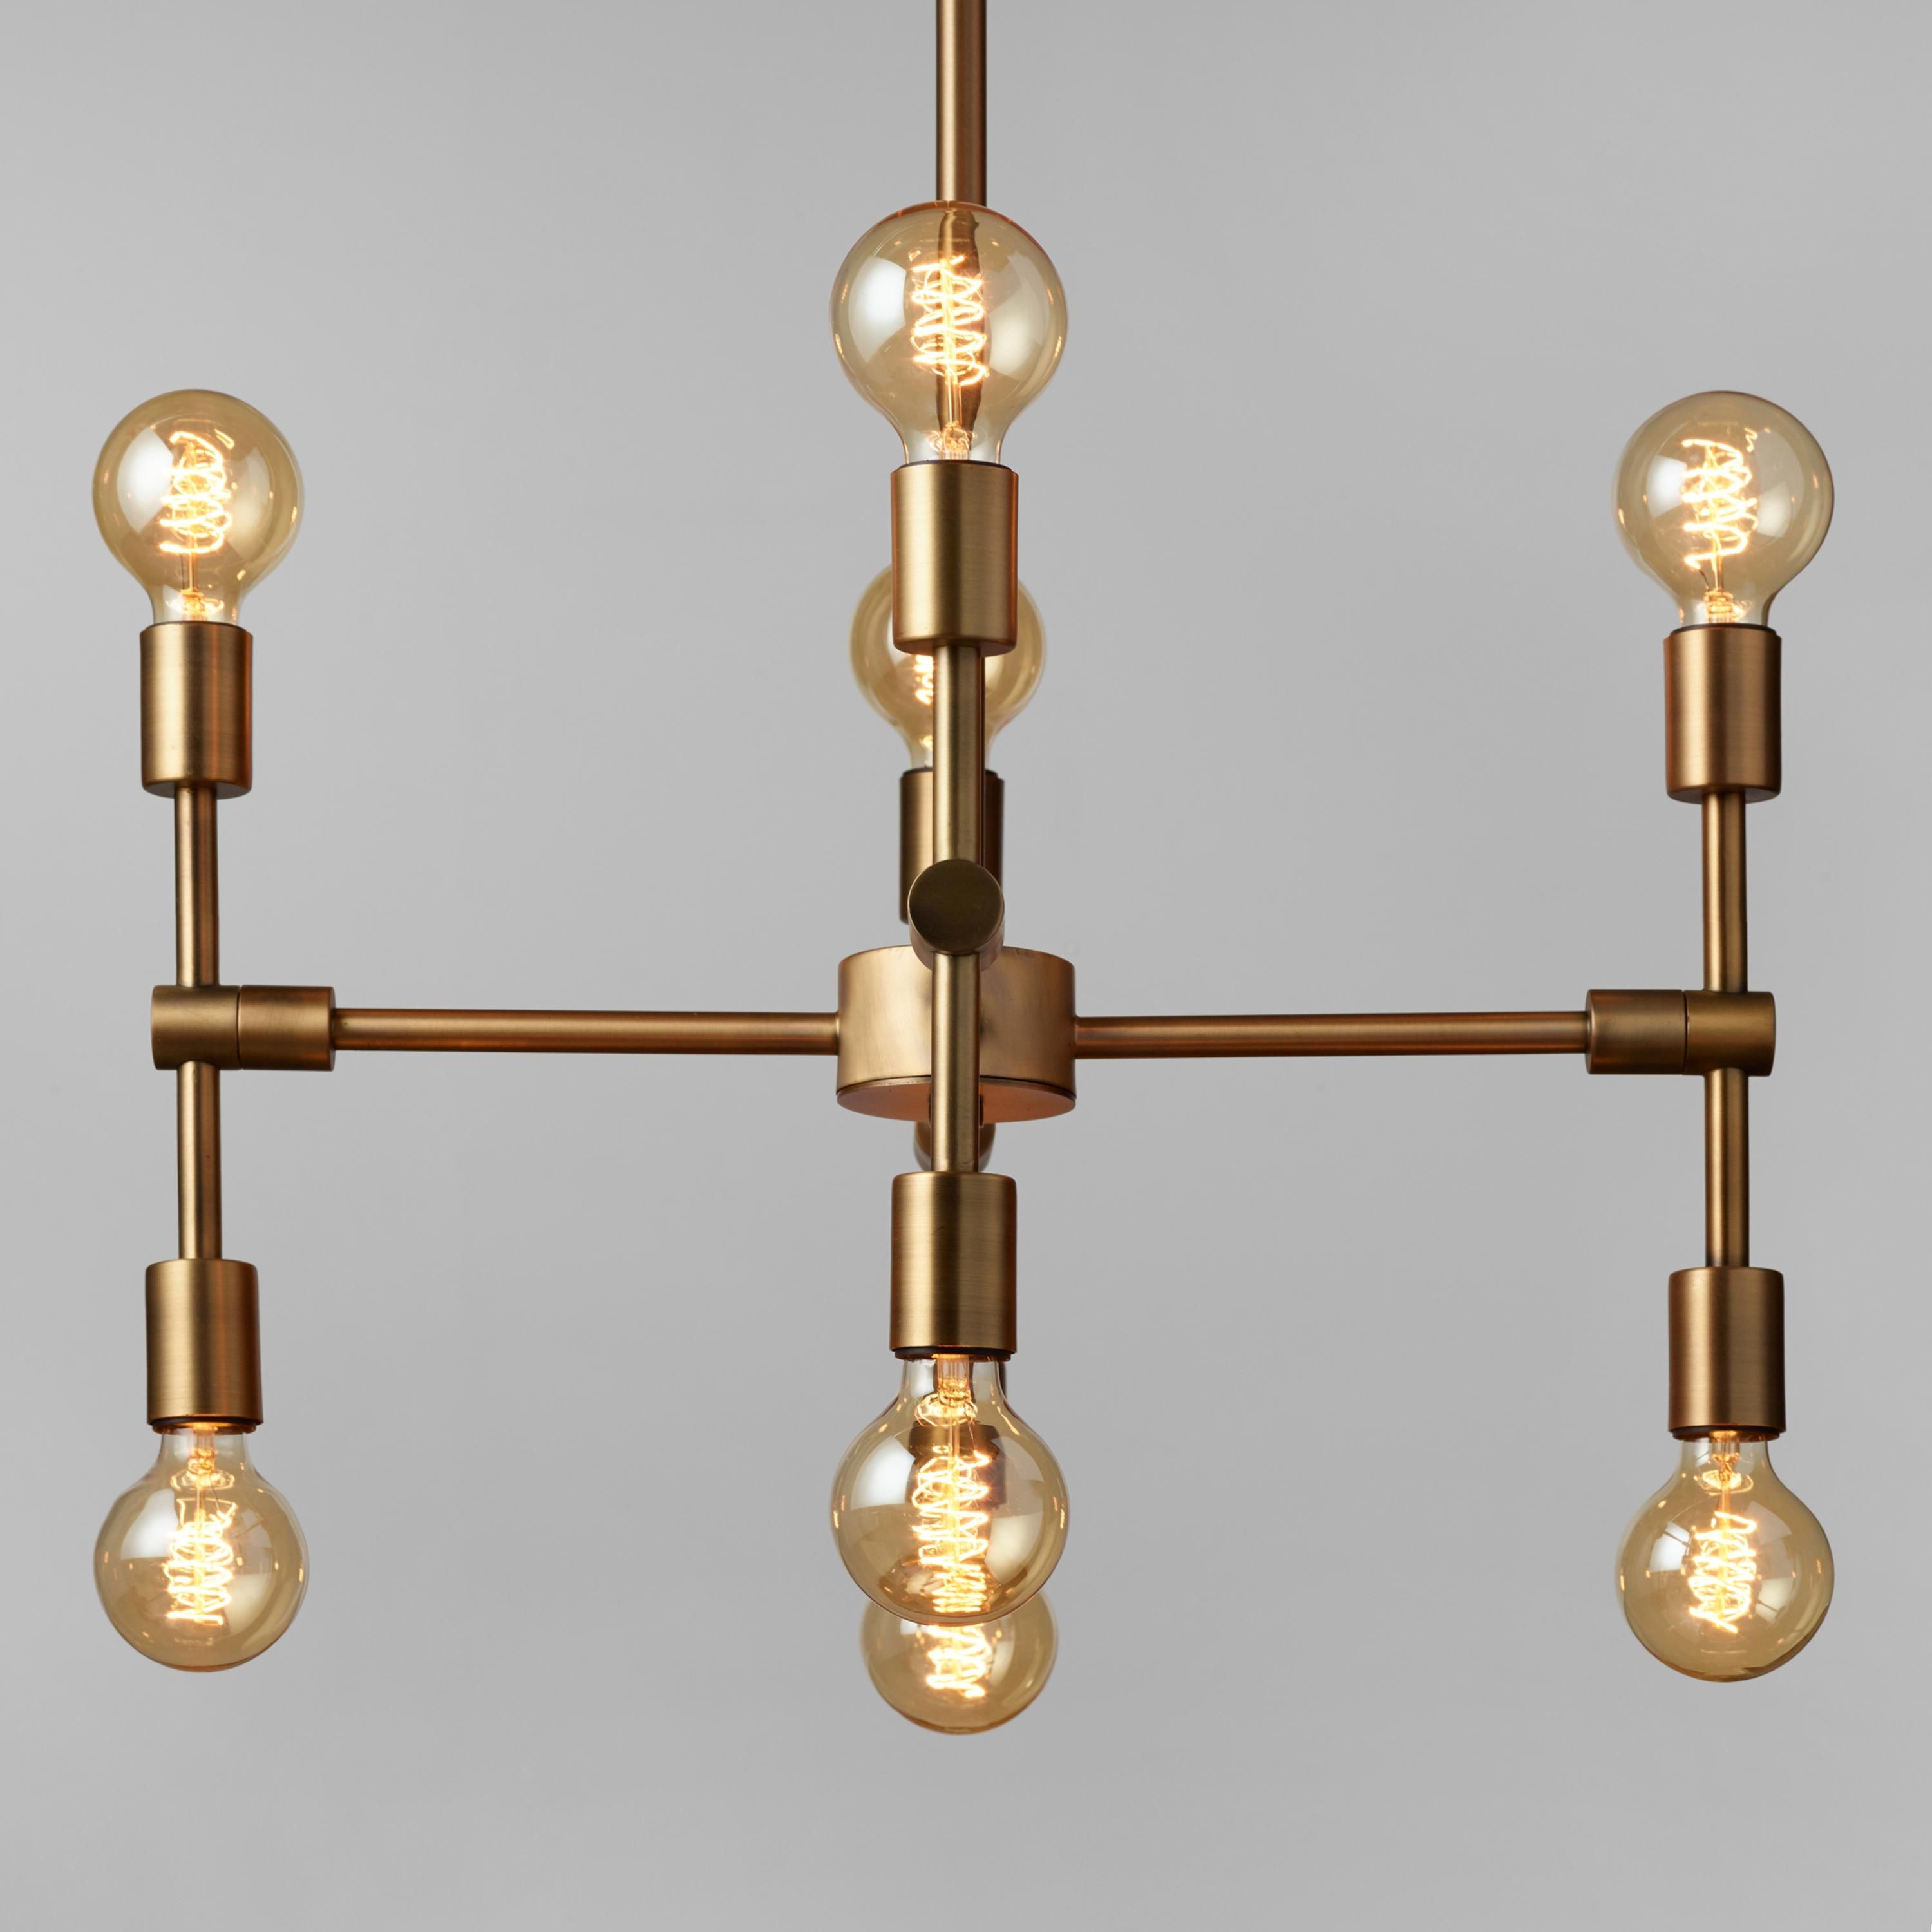 Best And Newest Bautista 6 Light Kitchen Island Bulb Pendants For Antique Gold Modular 8 Bulb Chandelier (View 7 of 20)